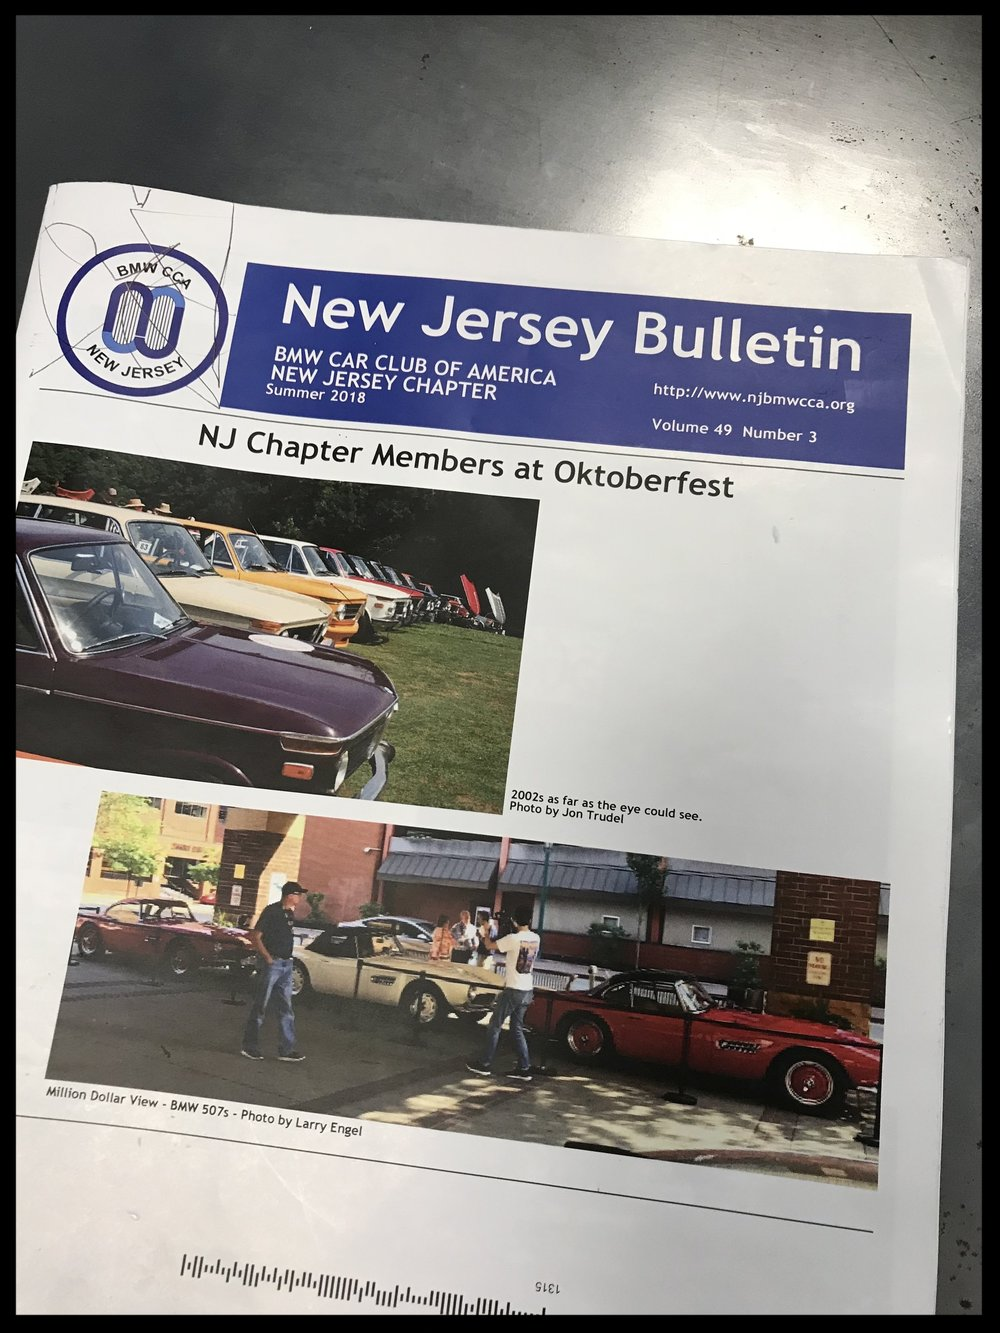 This is a magazine for a BMW enthusiast the BMW Car Club. The NJ chapter featured an ad for the client that I created.